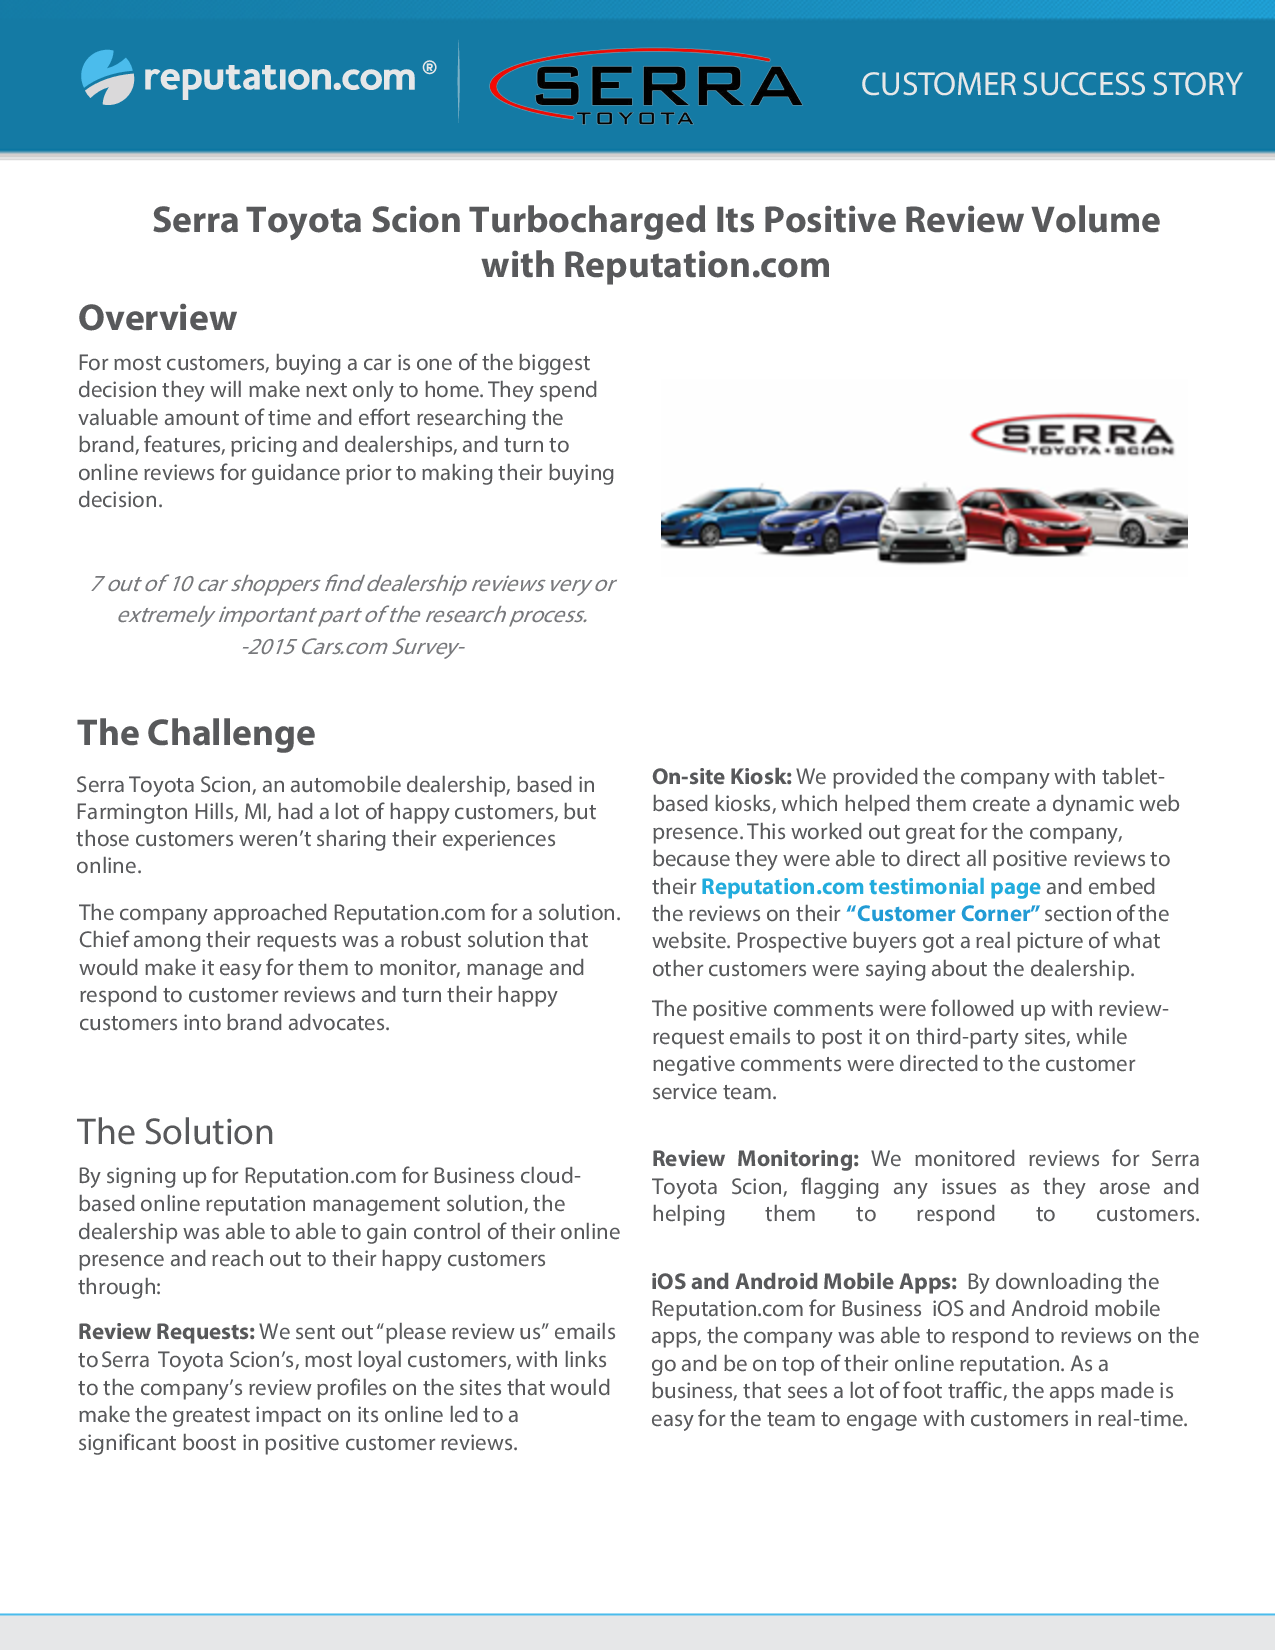 Overview Serra Toyota Scion Turbocharged Its Positive Review Volume With  Reputation.com